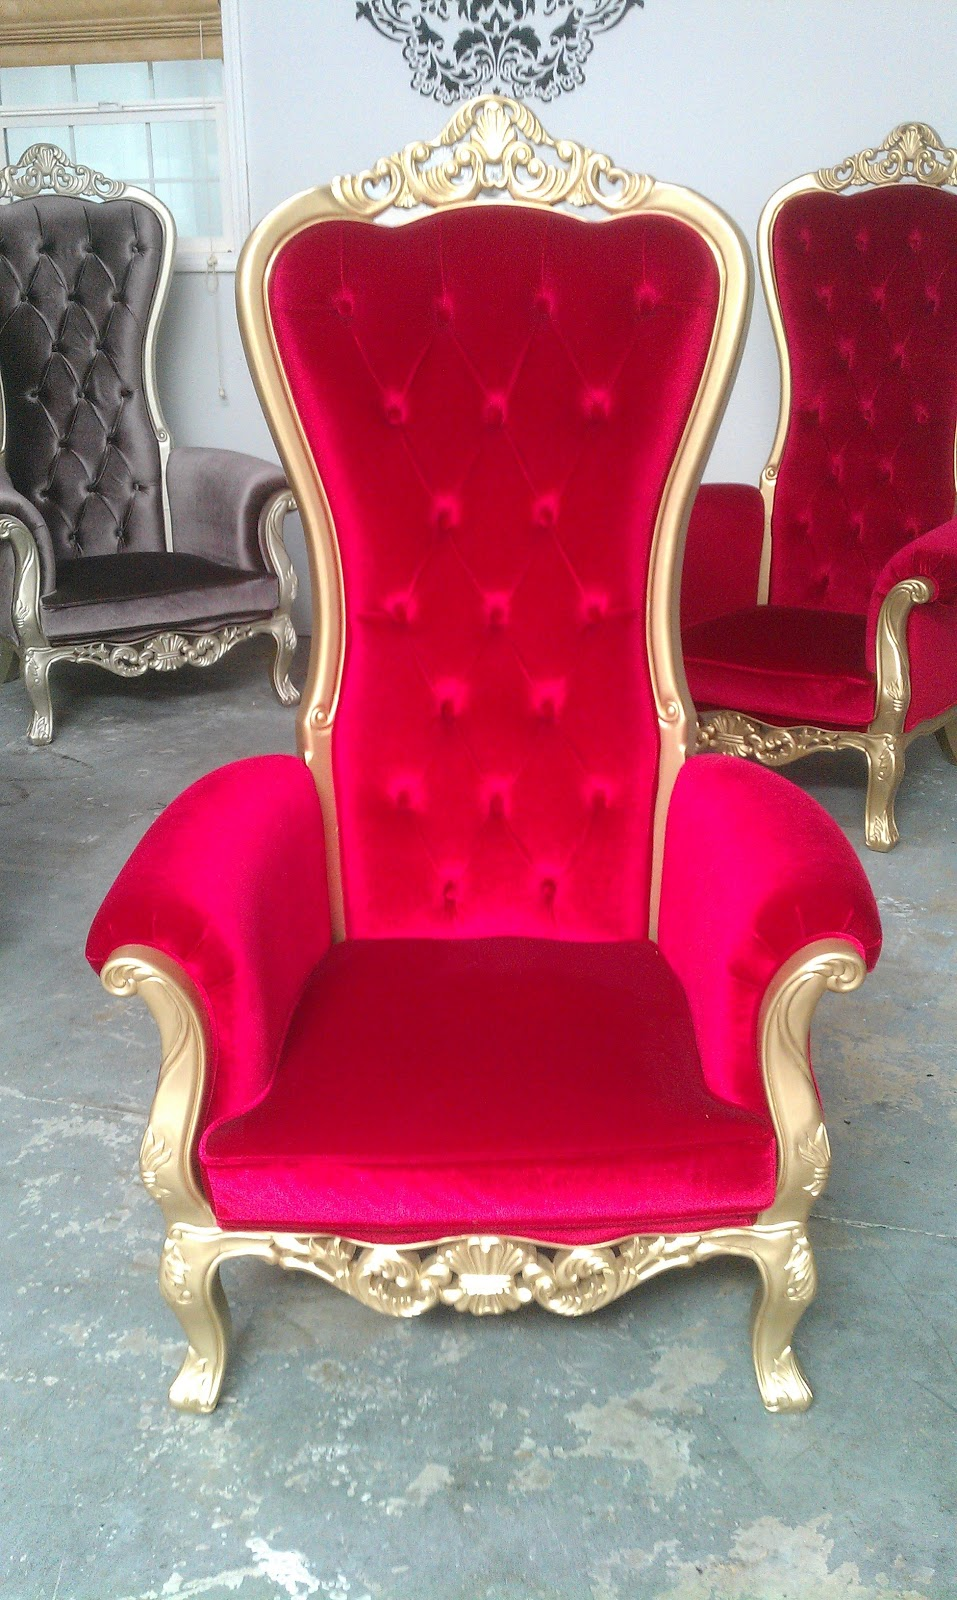 royal chair rentals